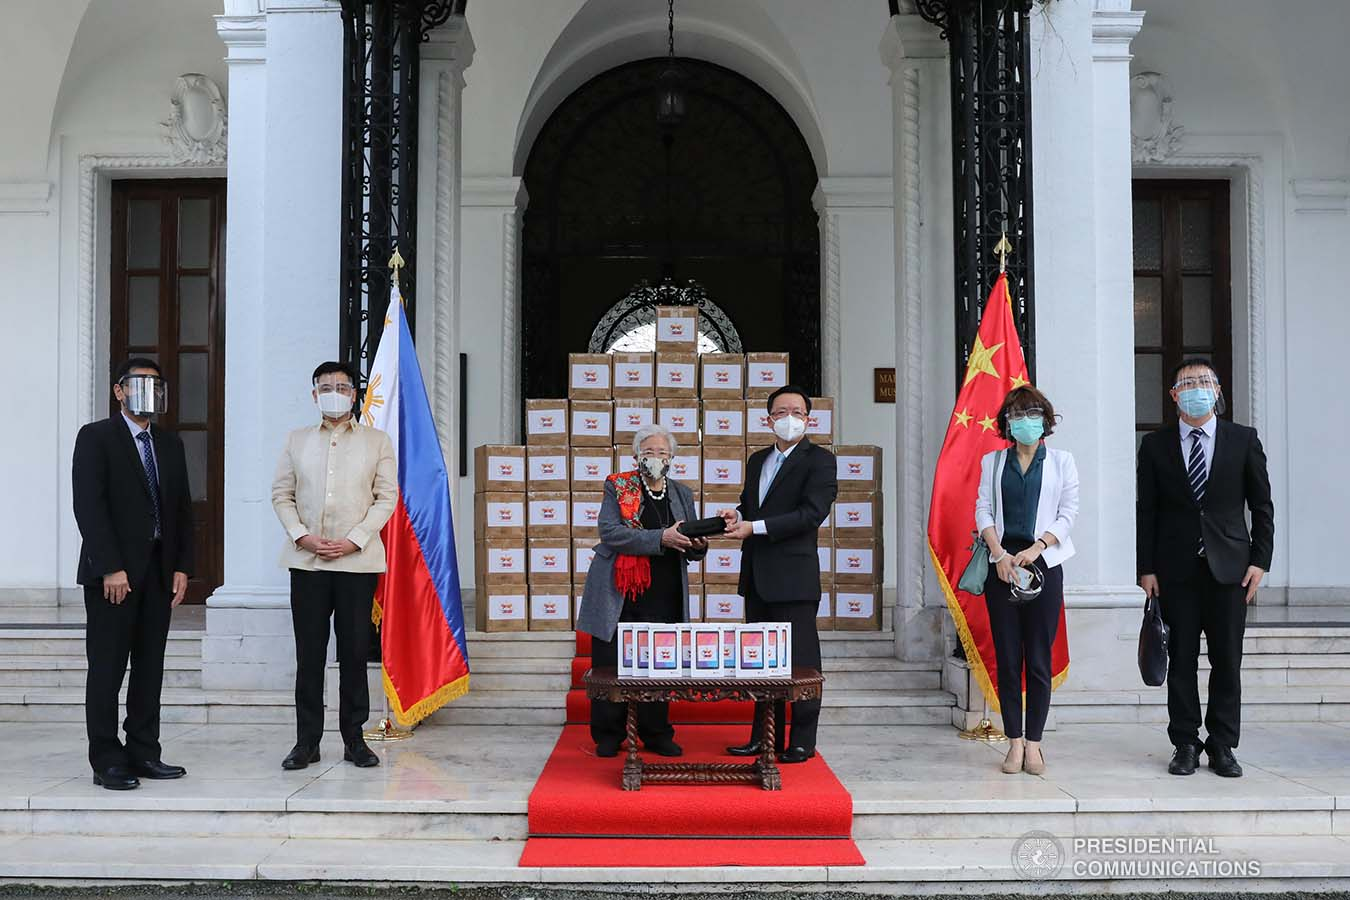 TABLETS FOR LAST MILE SCHOOLS. Secretary of Education Leonor Briones receives 2,000 tablets from Chinese Ambassador Huang Xilian. The tablets will be used for DepEd's blended distance learning program and will benefit Last Mile Schools in far-flung areas.Also present during the ceremonial turnover were Presidential Assistant for Foreign Affairs Robert E.A. Borje and representatives from the Chinese Embassy and the Department of Education. PRESIDENTIAL PHOTOS